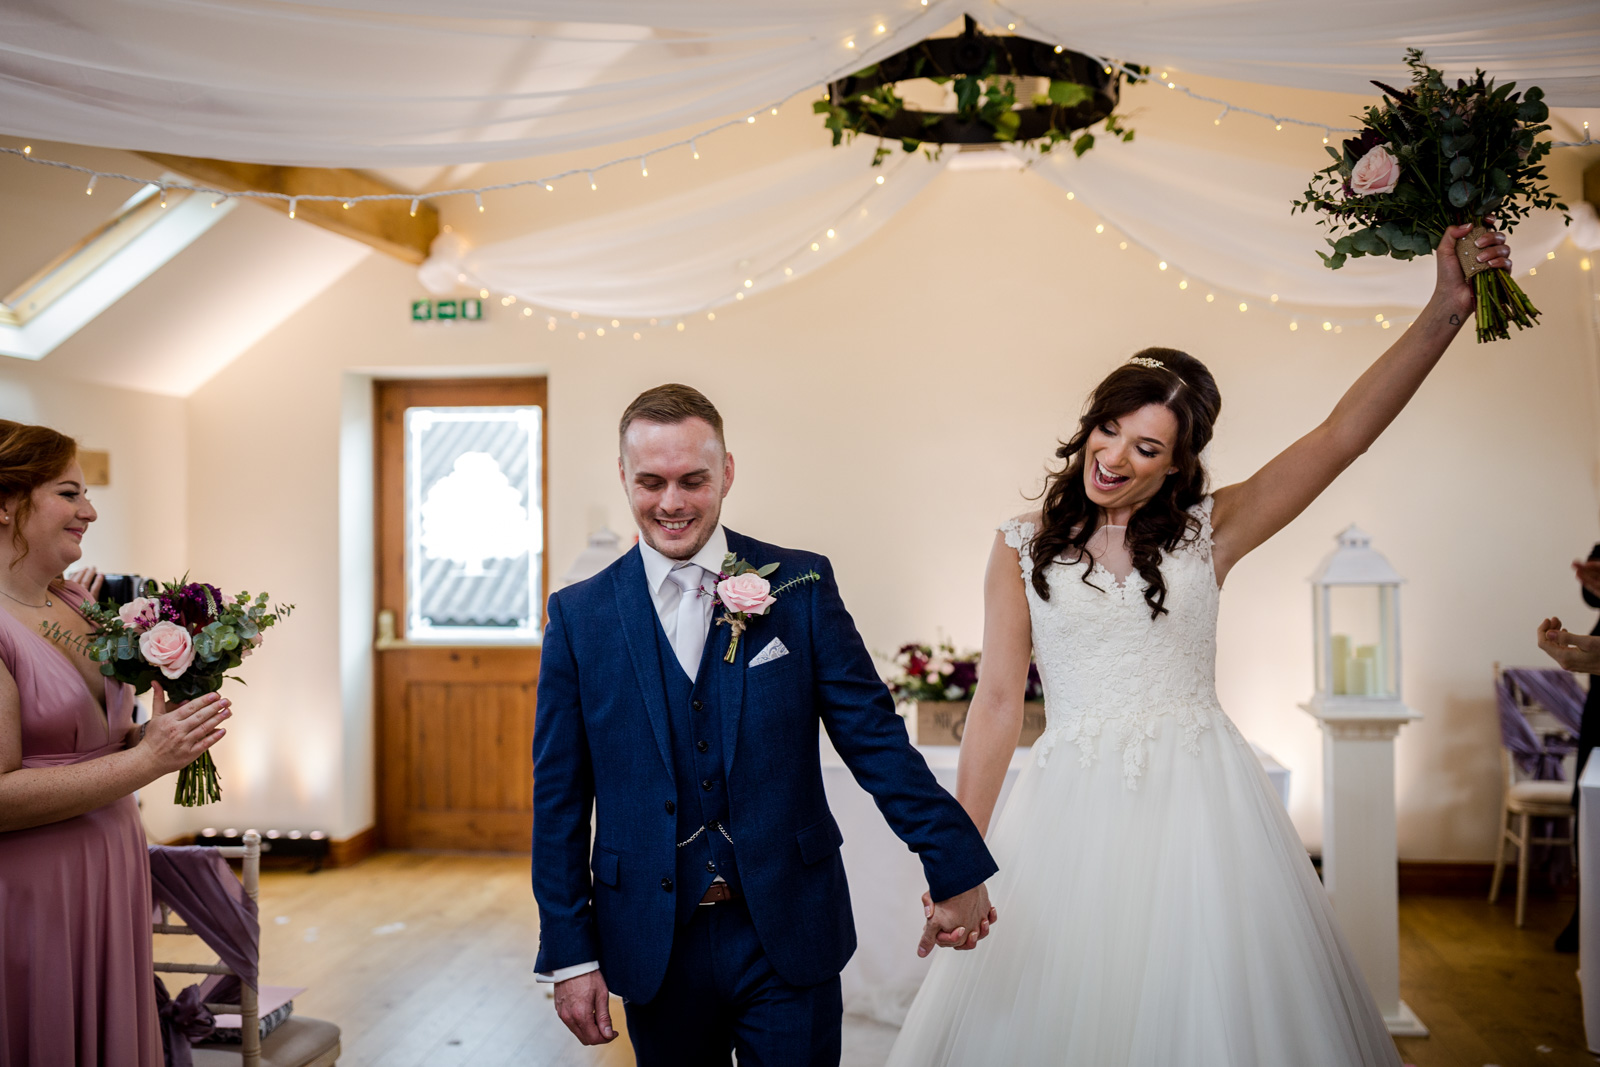 The bride and groom during their Beeston Manor Wedding